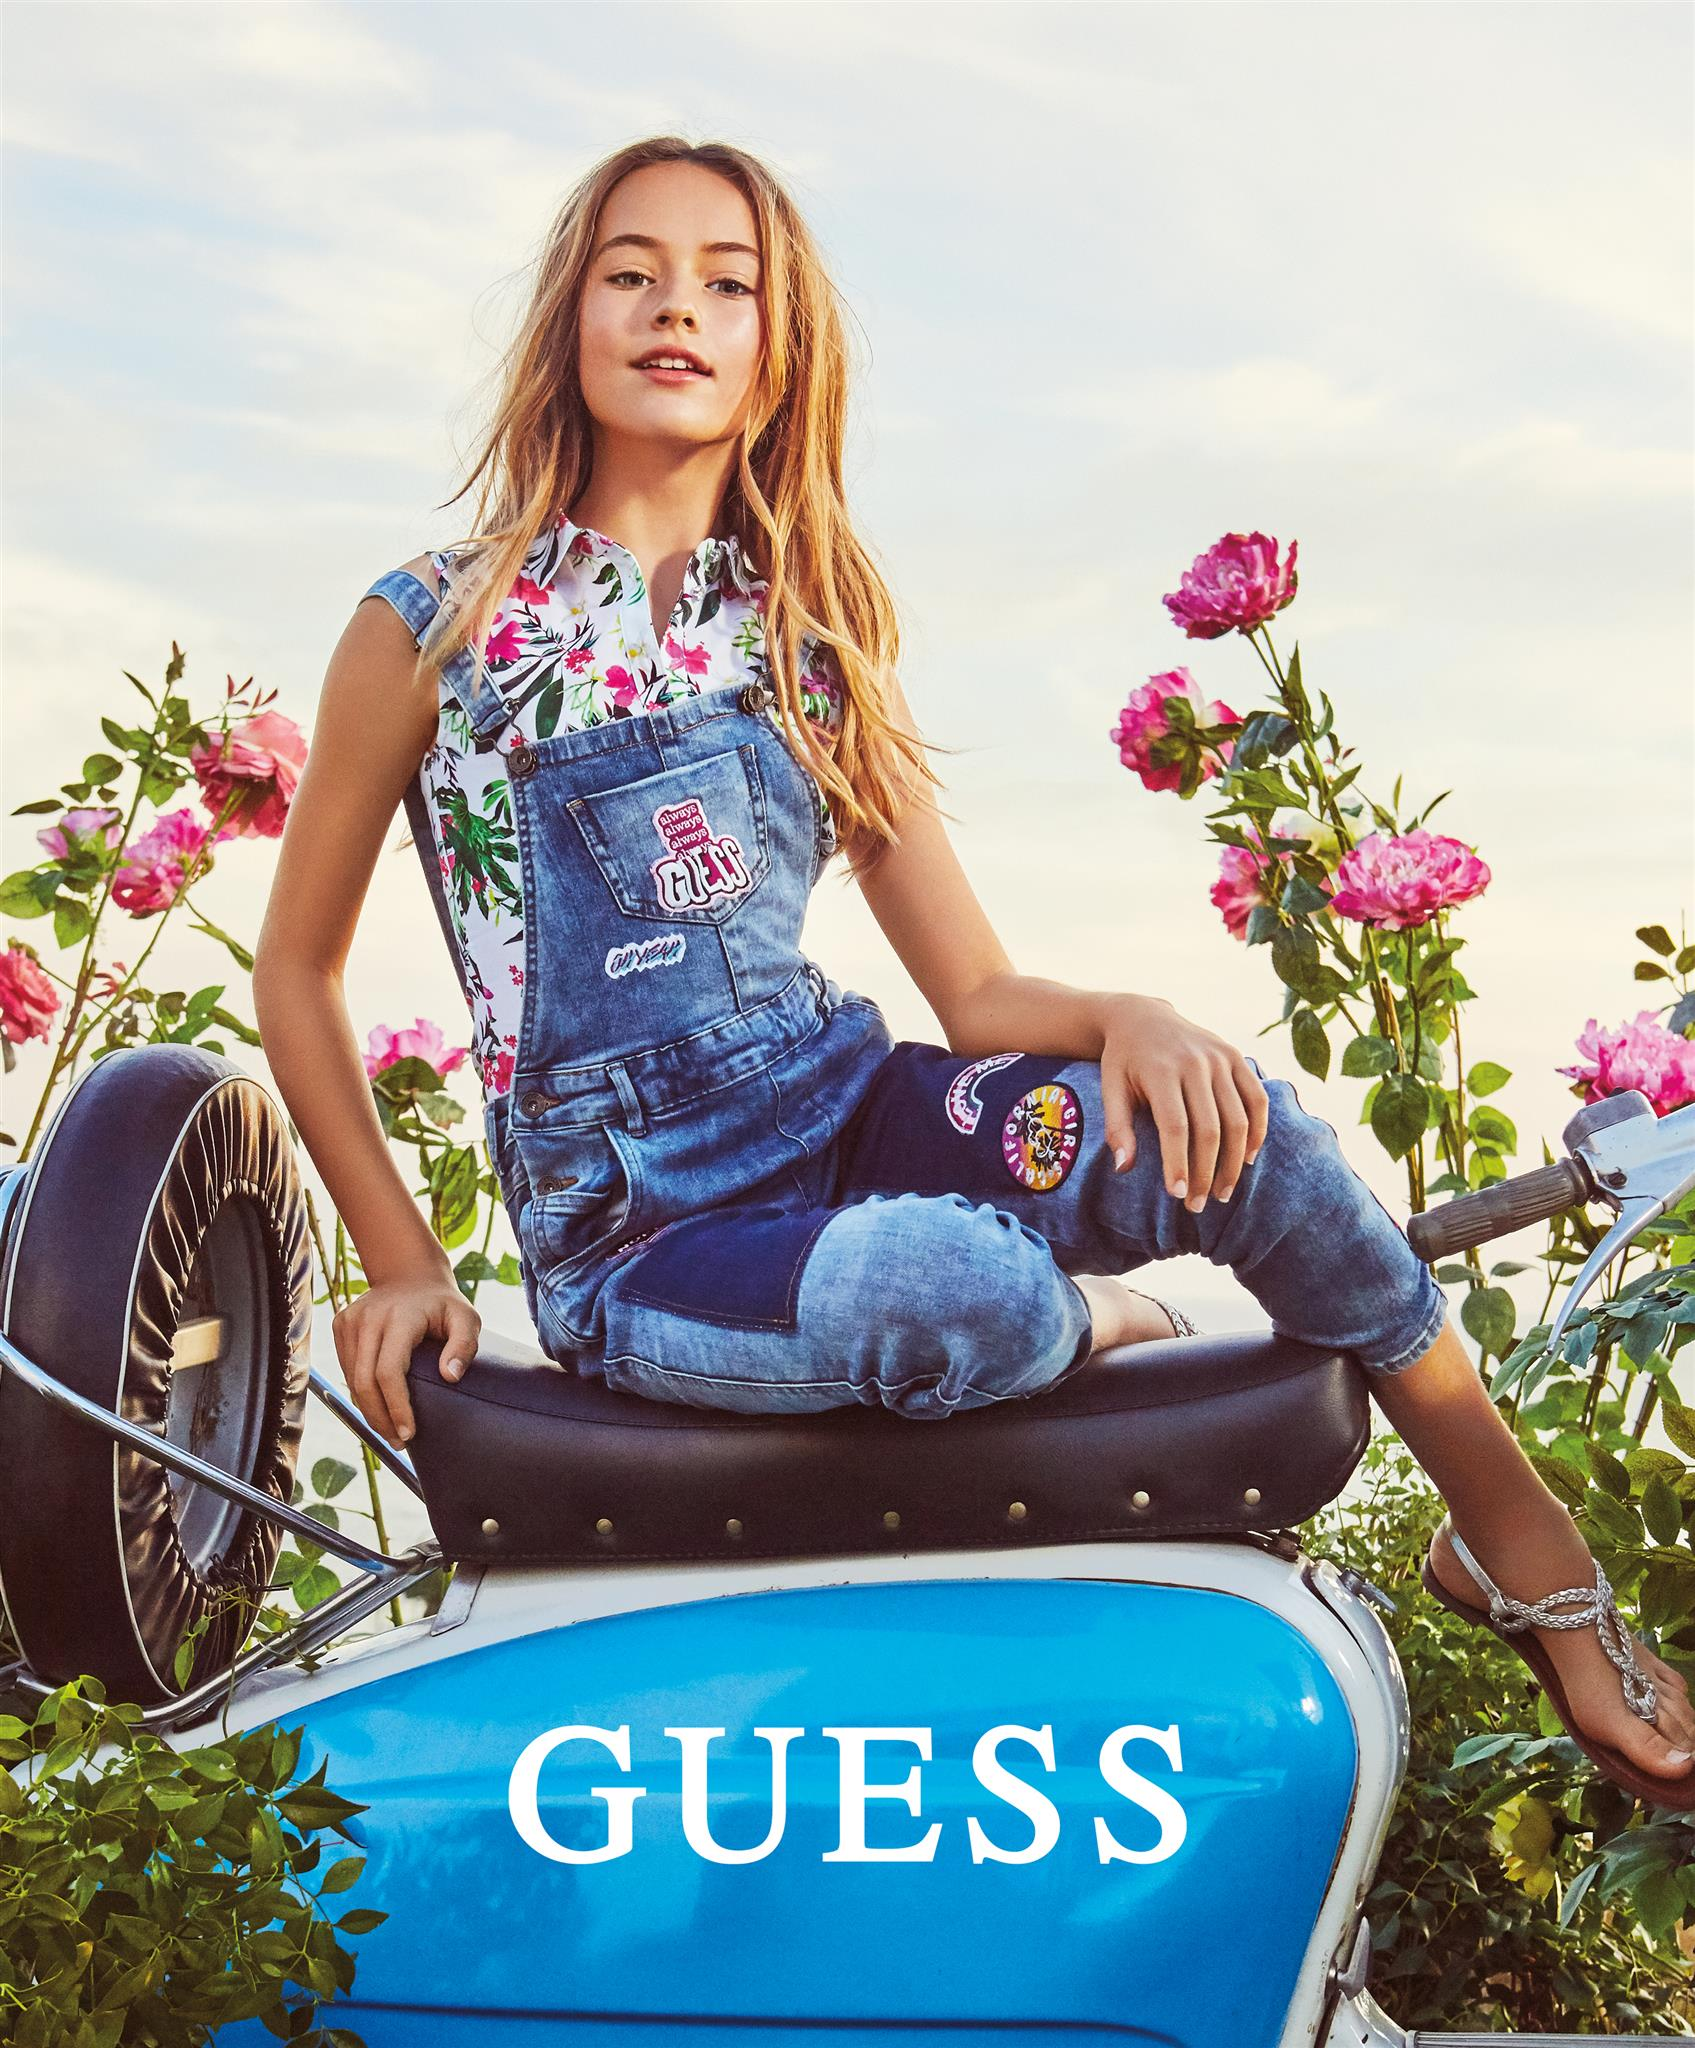 599_GUESS_Kids_Sp18_V15